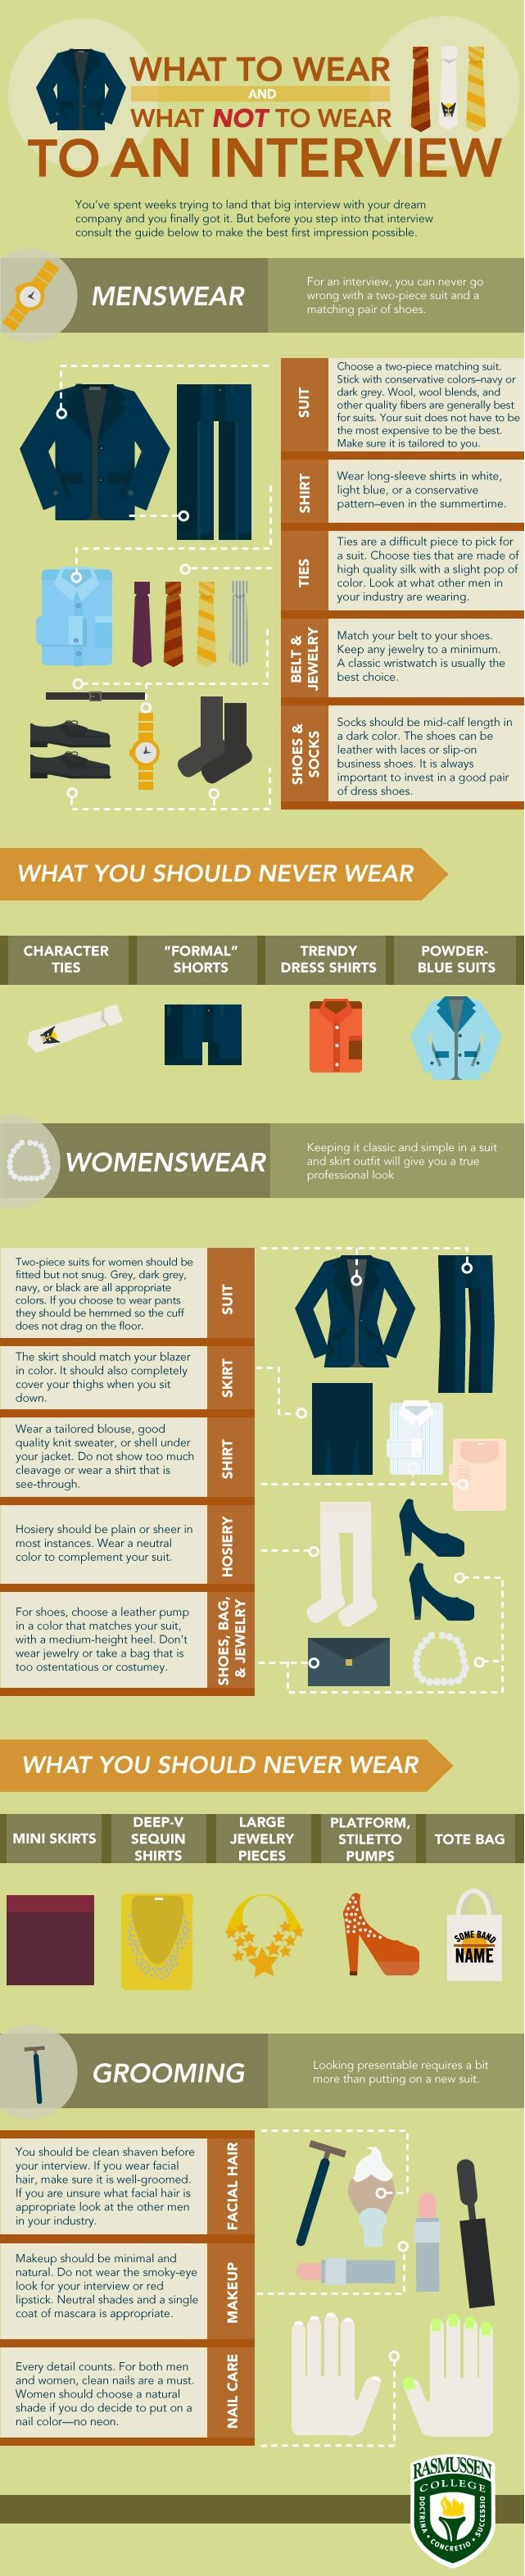 What To Wear And What Not To Wear To An Interview